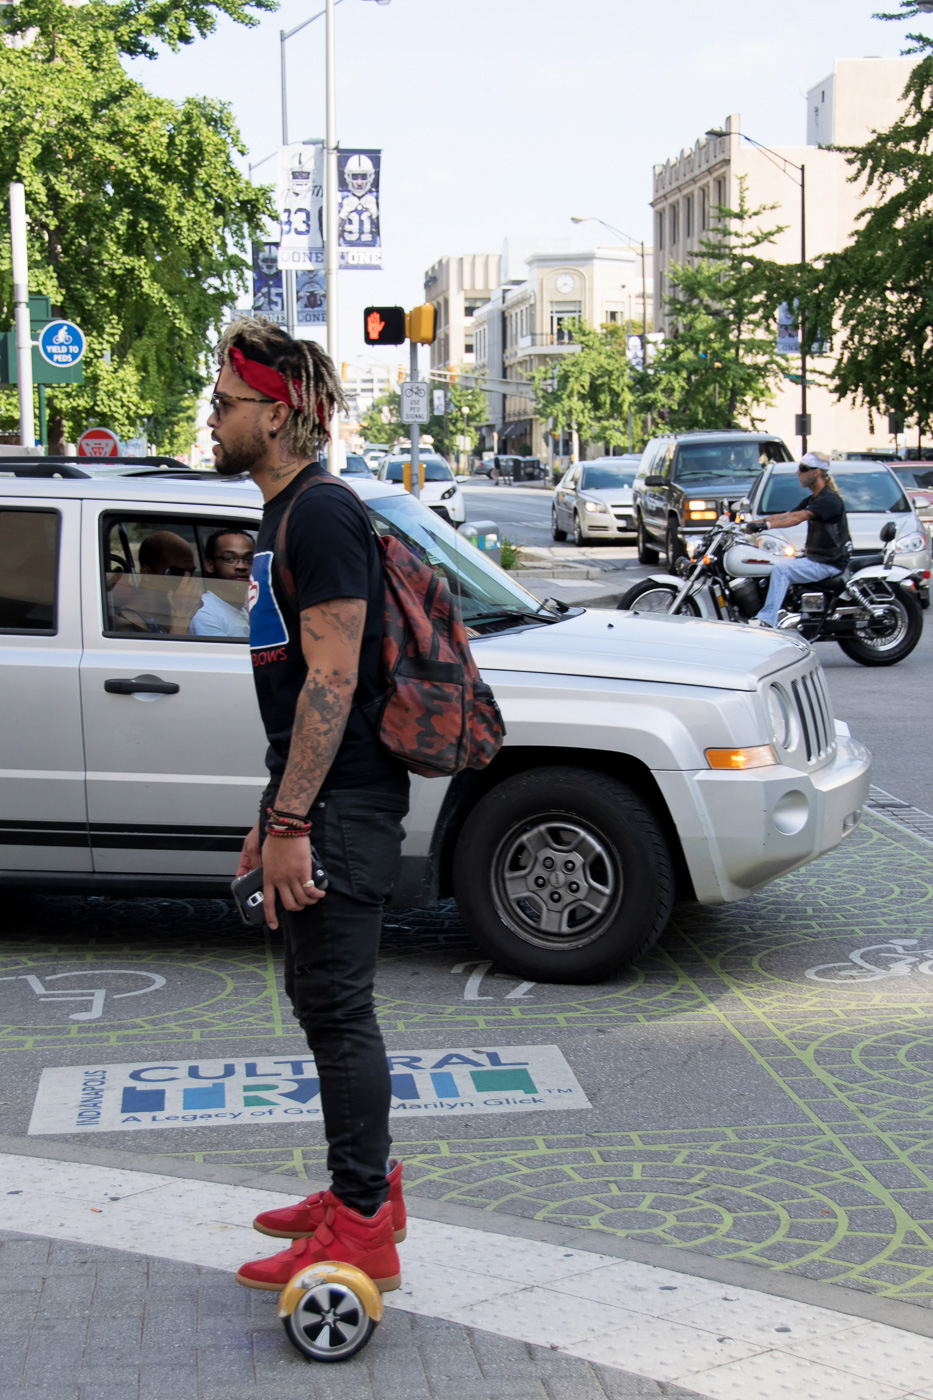 A guy crosses the street on his Swagway Scooternext to a gasoline-eating car and a motorcycle.